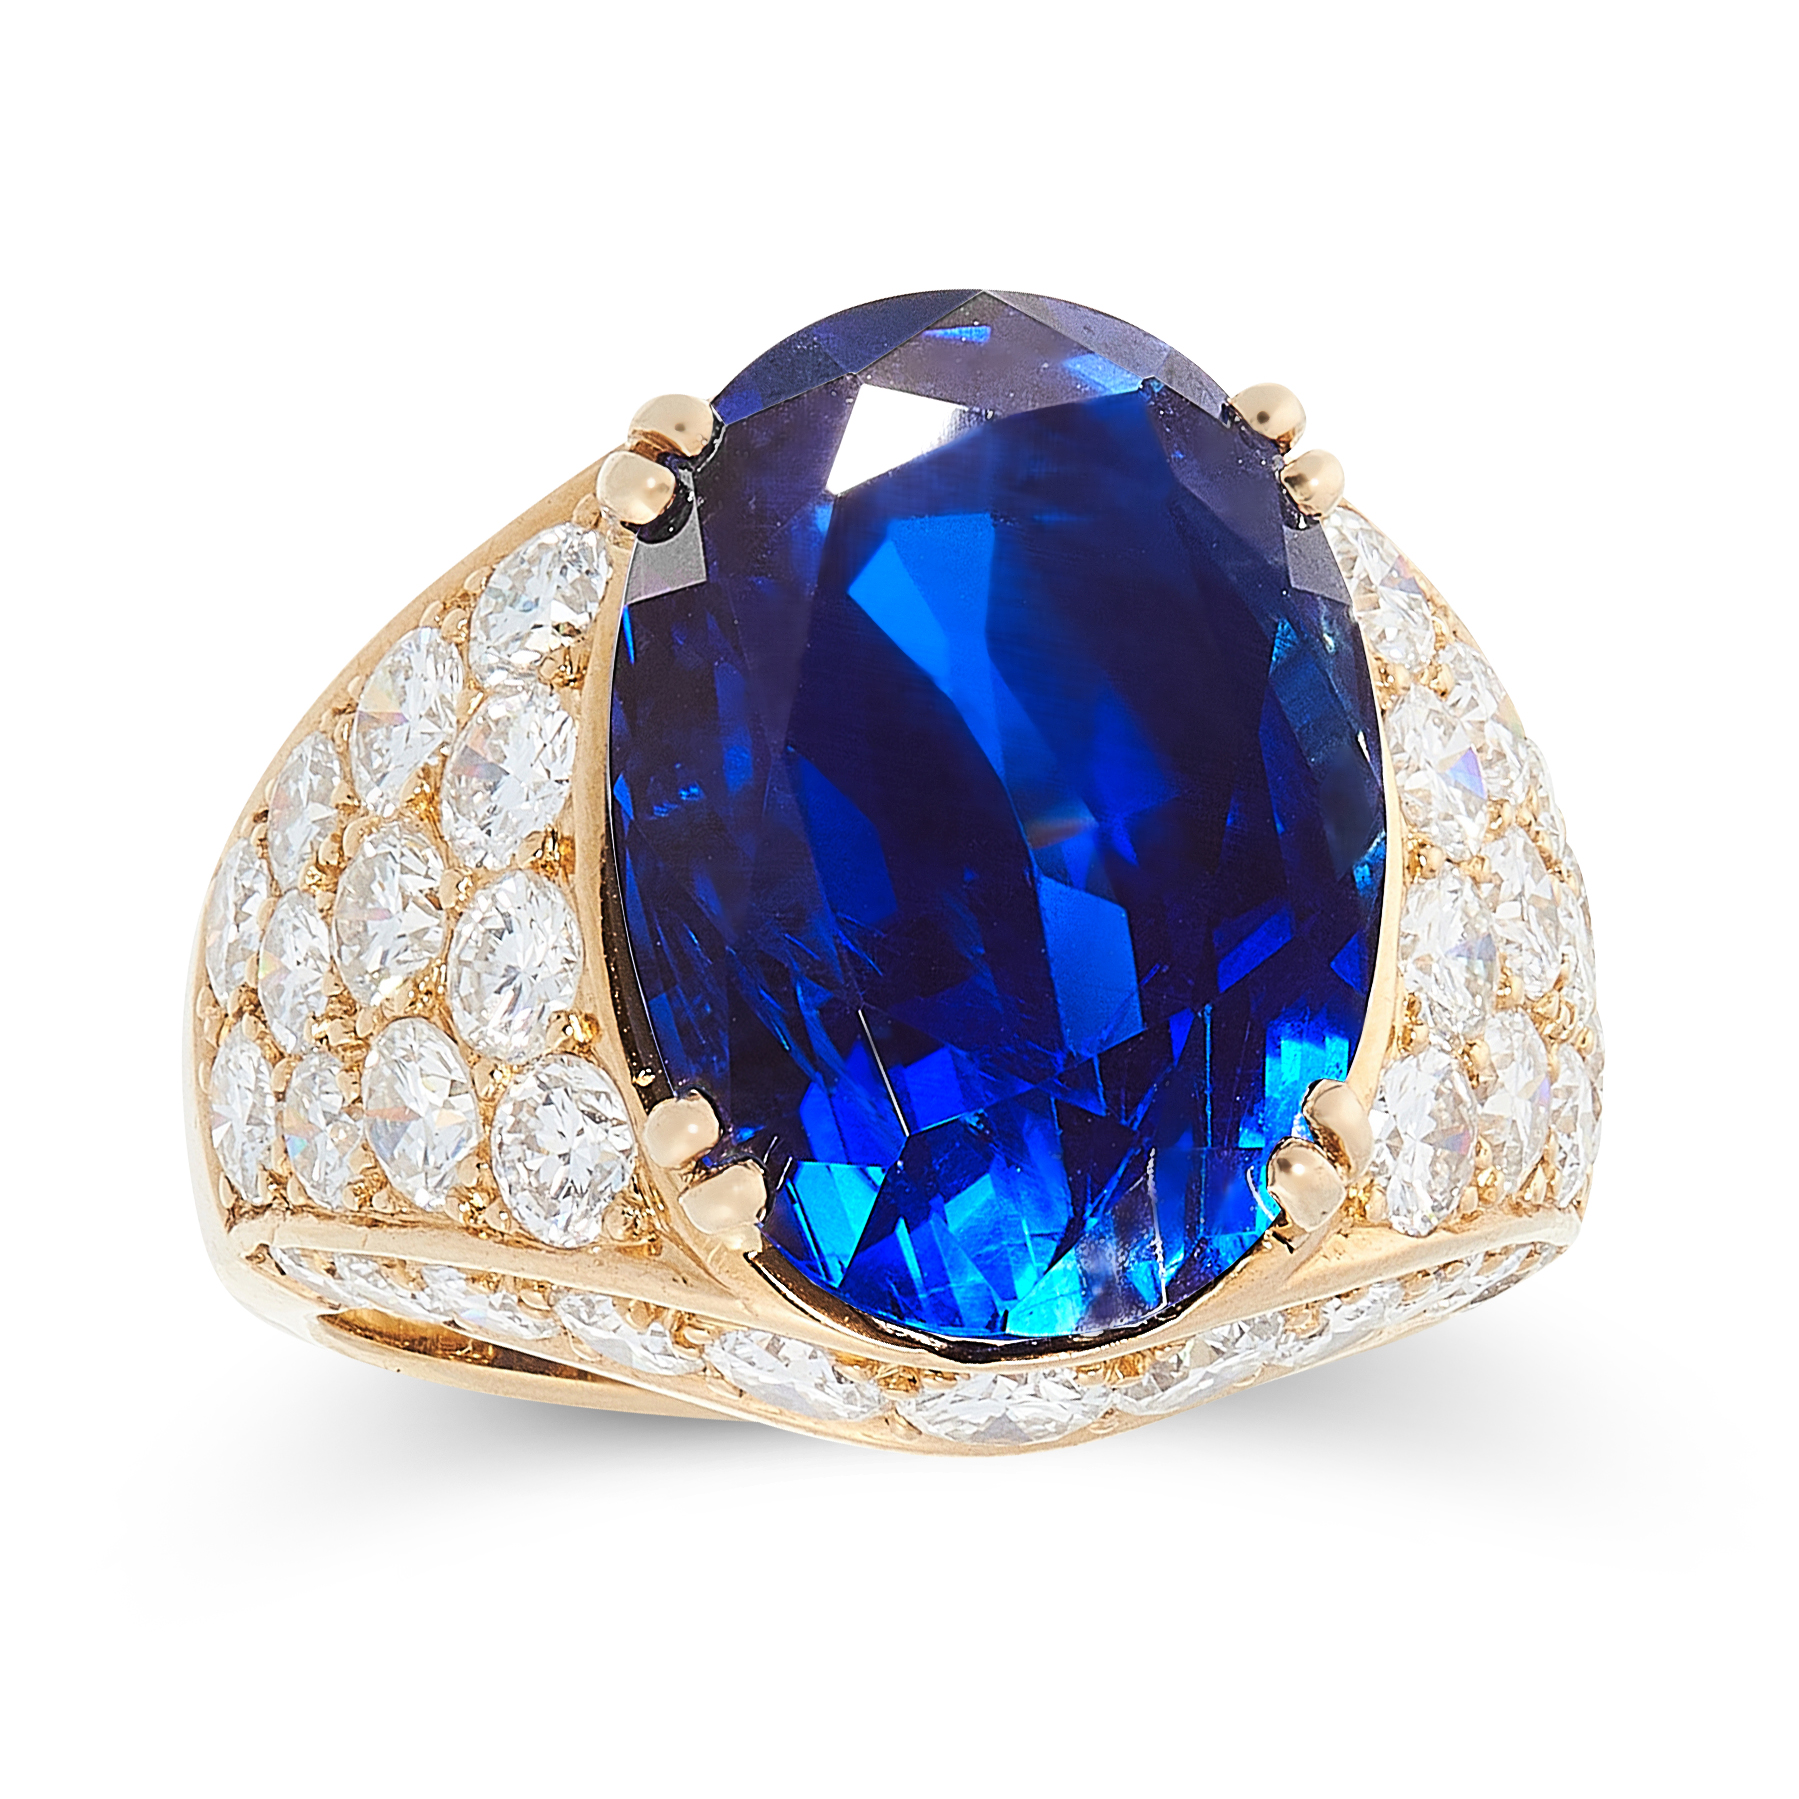 A 13.38 CARAT BURMA NO HEAT SAPPHIRE AND DIAMOND RING, VAN CLEEF & ARPELS set with an oval cut